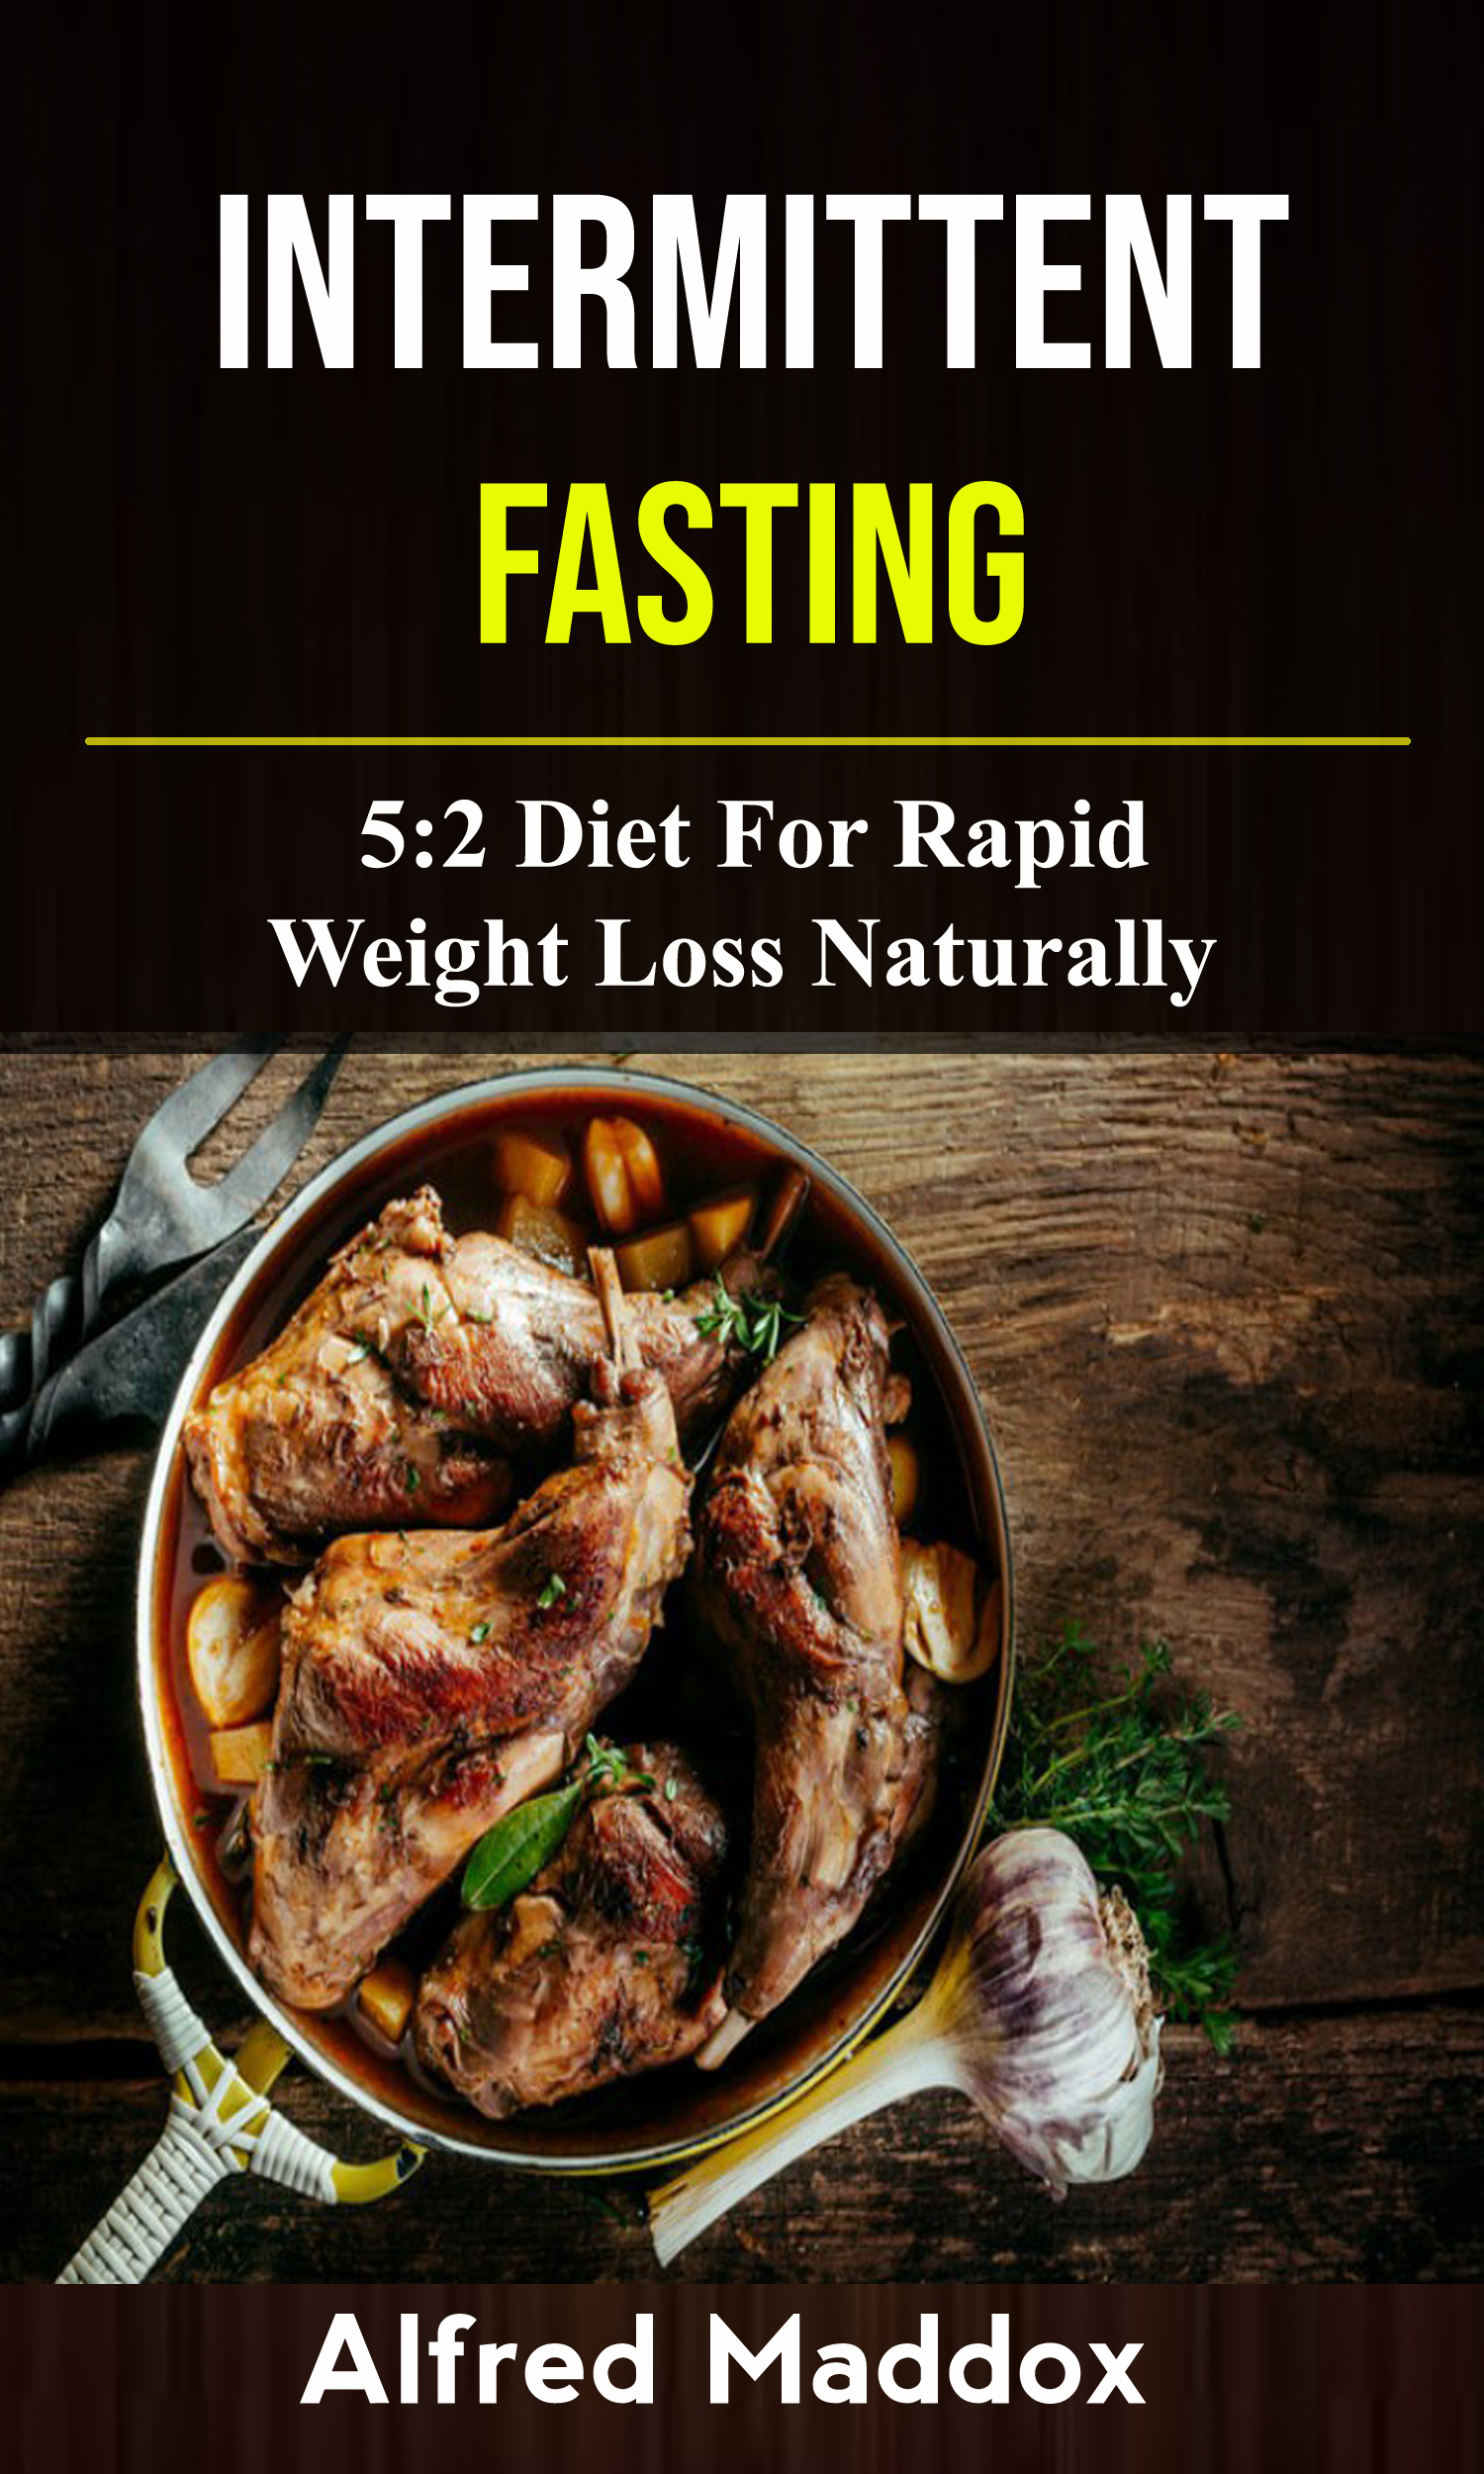 Intermittent fasting: 5:2 diet for rapid weight loss naturally